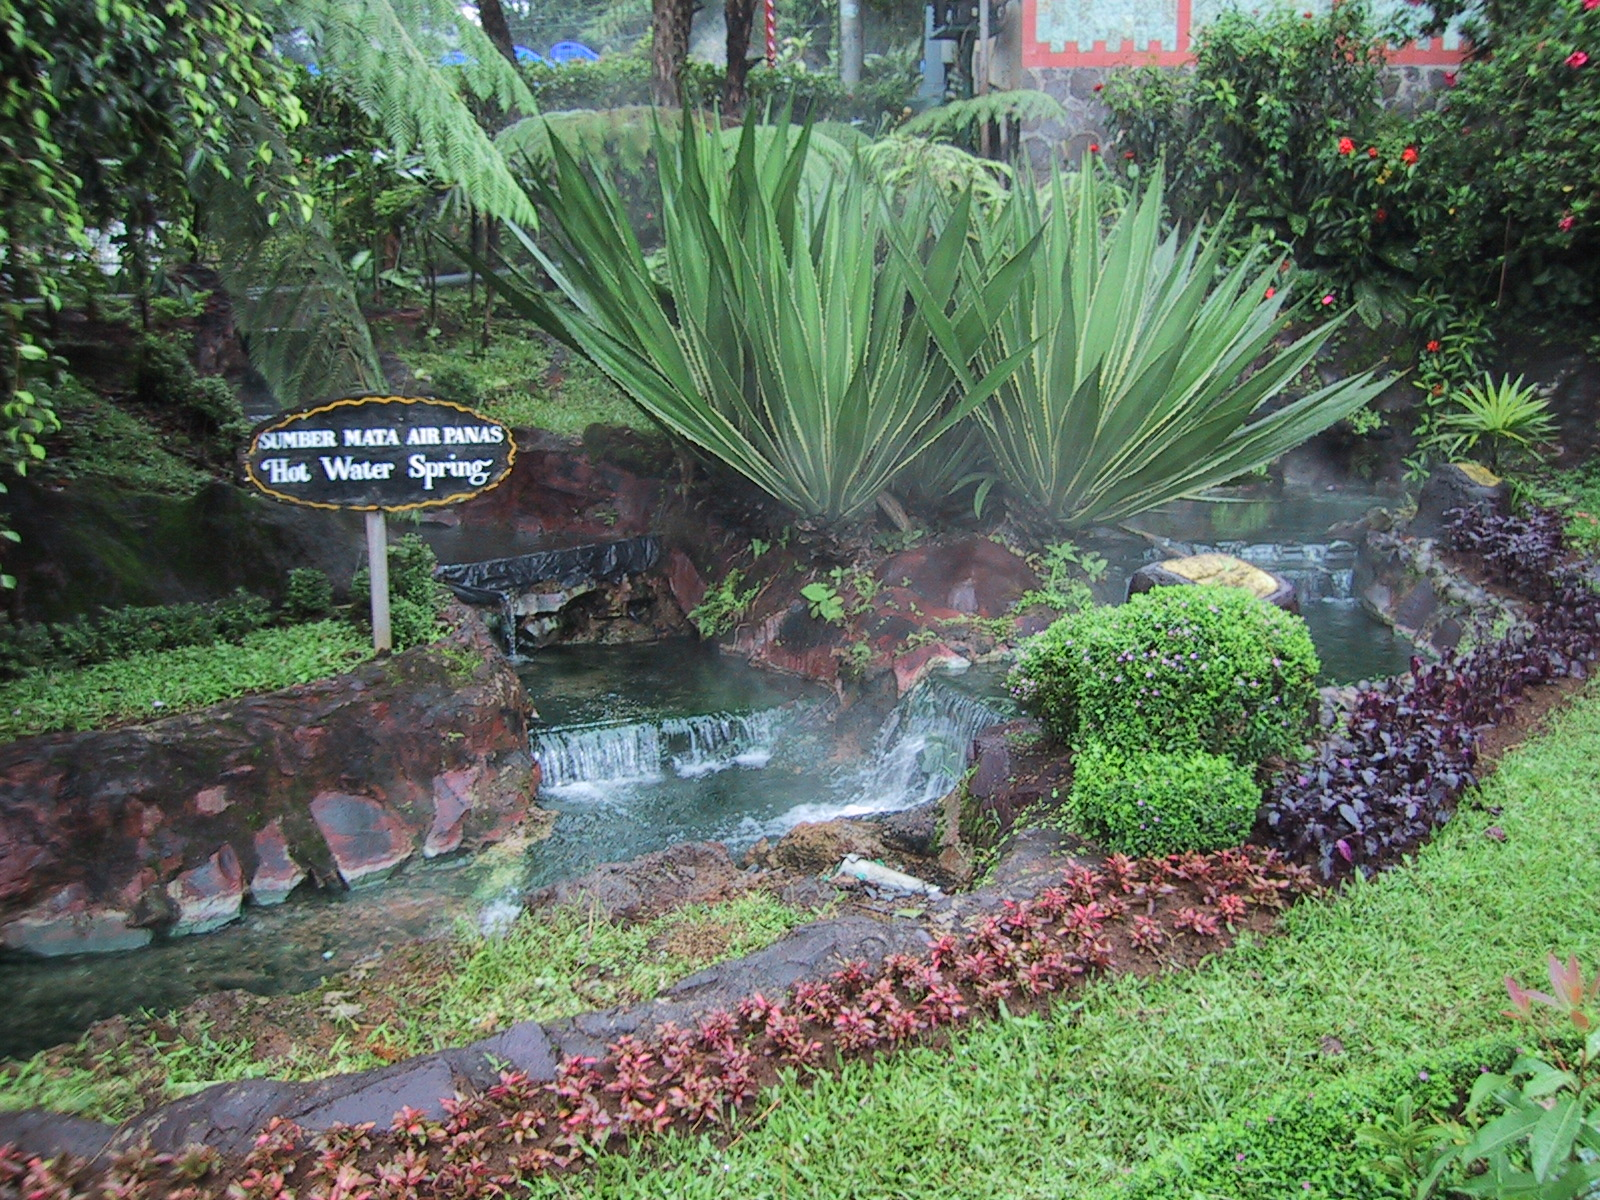 Sari Ater Hot Springs